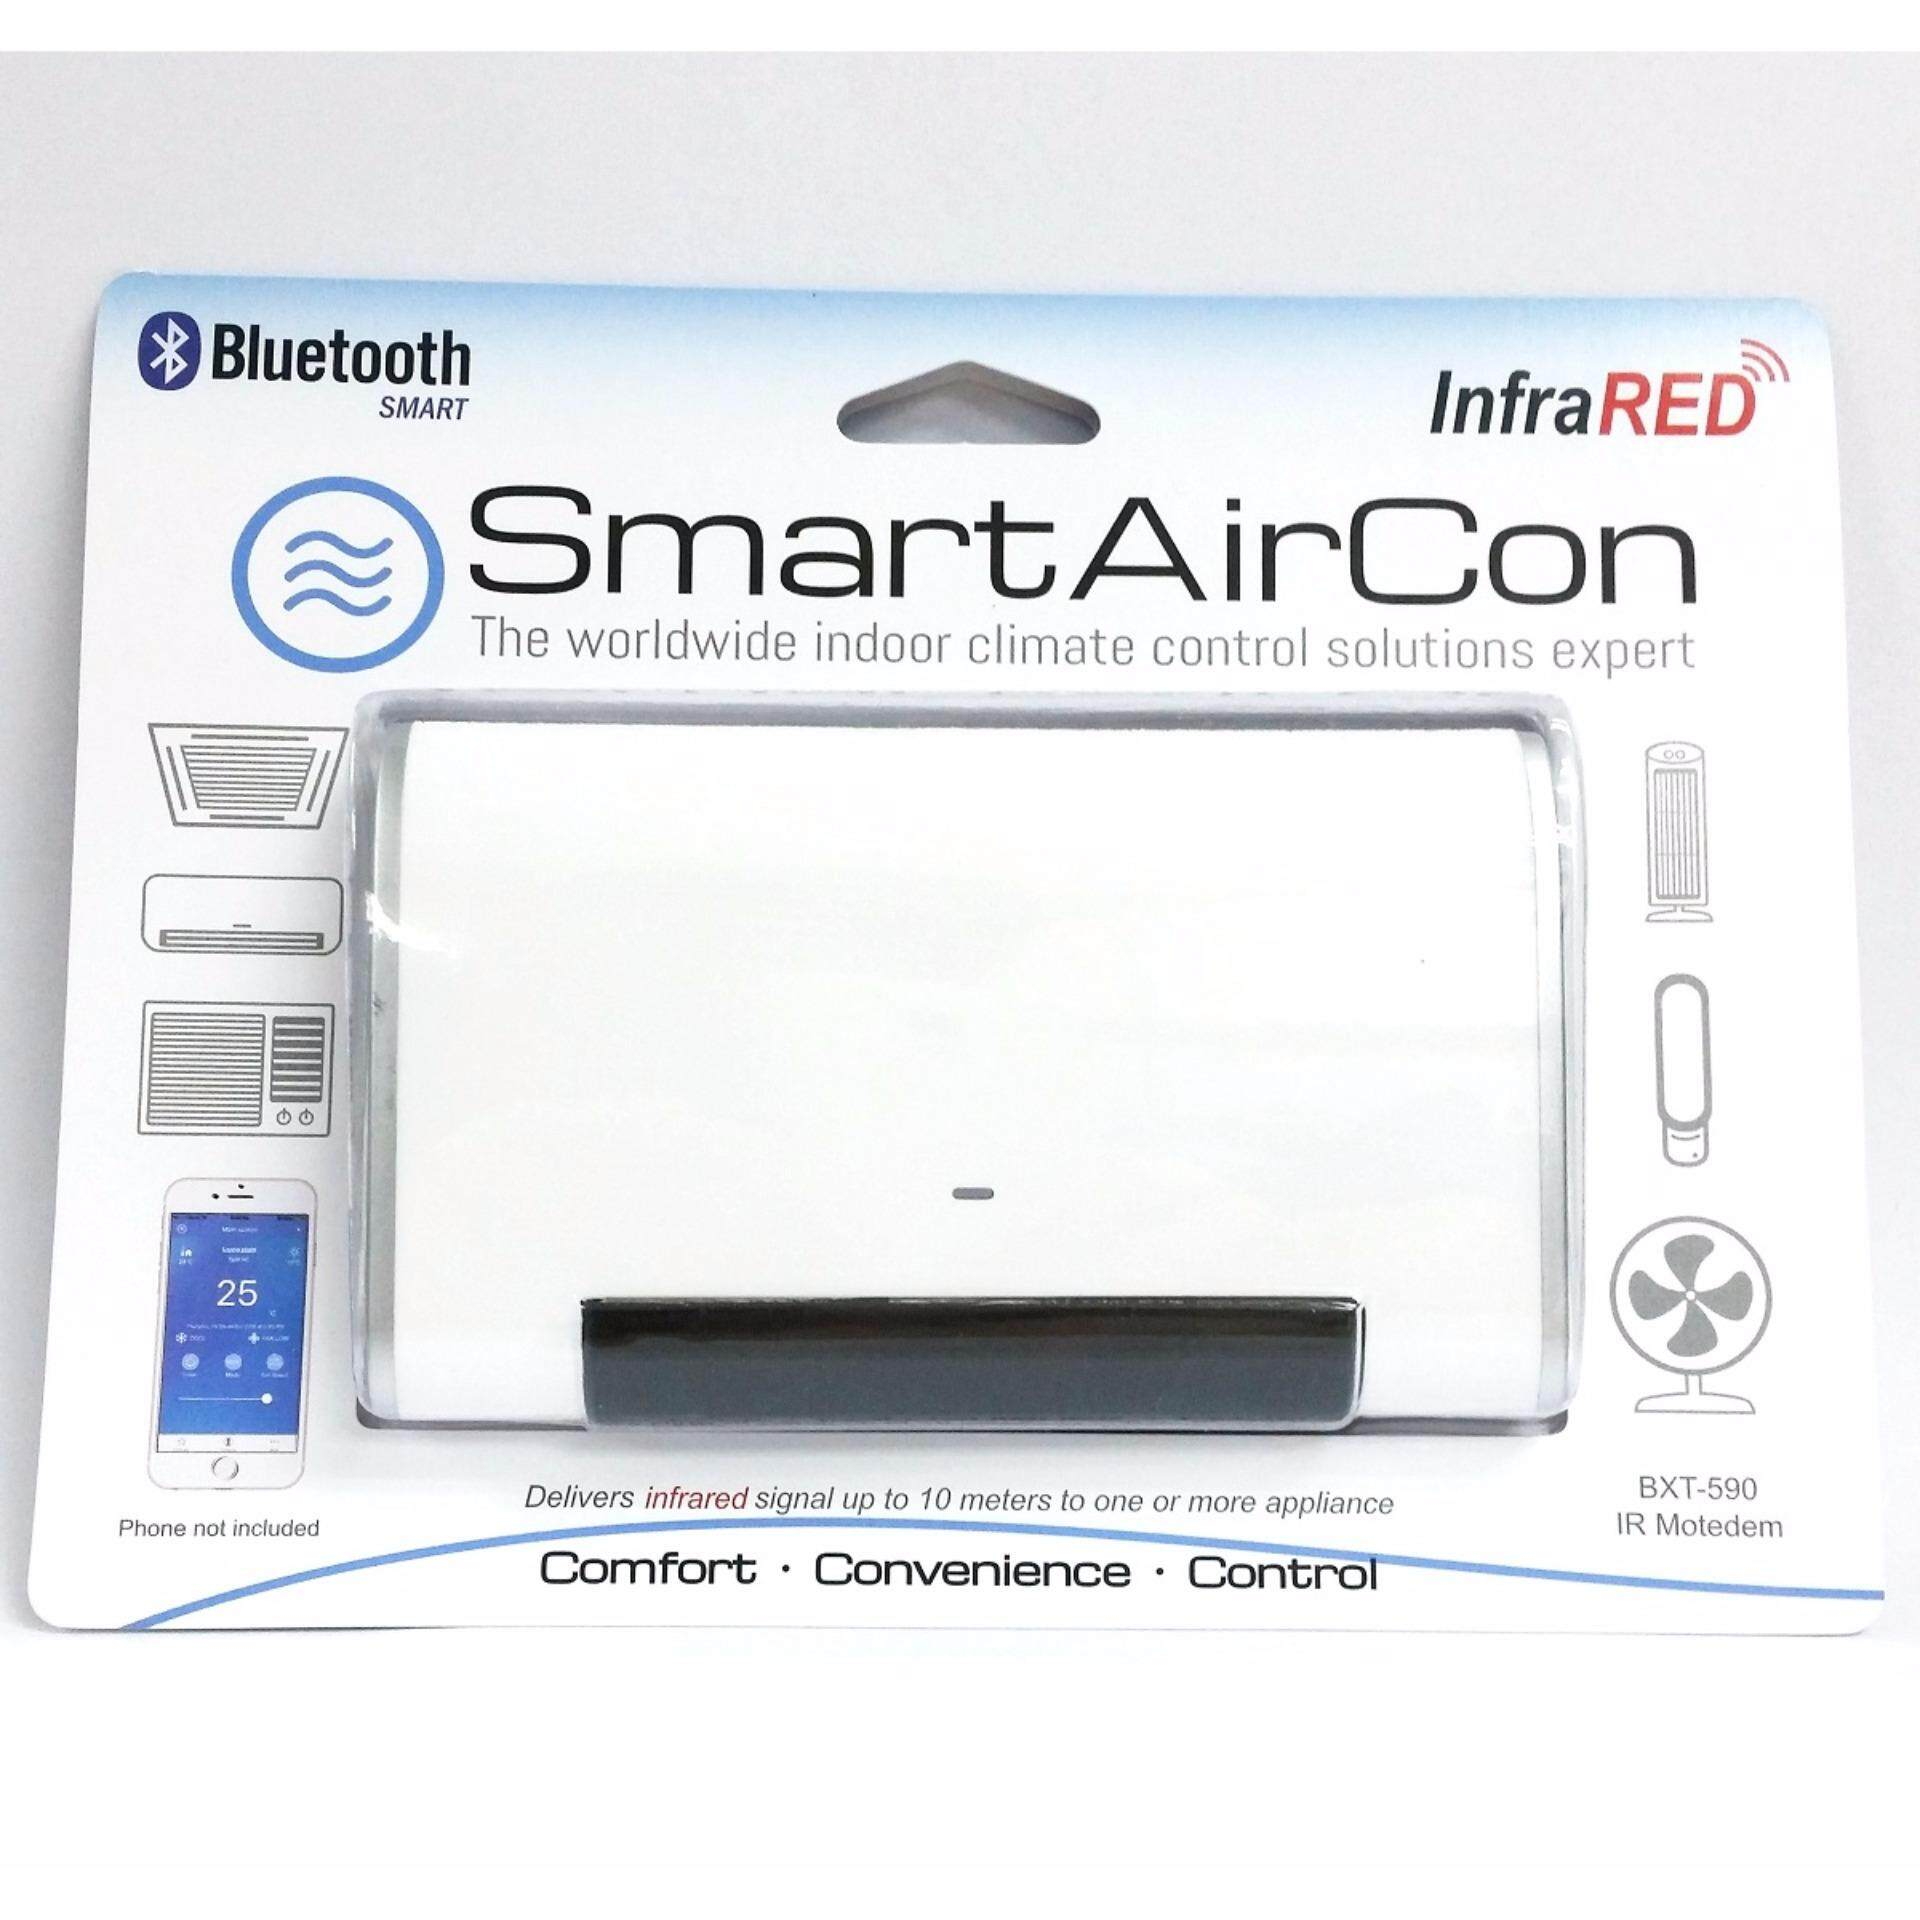 ... SmartAirCon IR Motedem Universal Intelligent Remote Controller Smart Home Smart Air Conditioning with IOS / Android ...